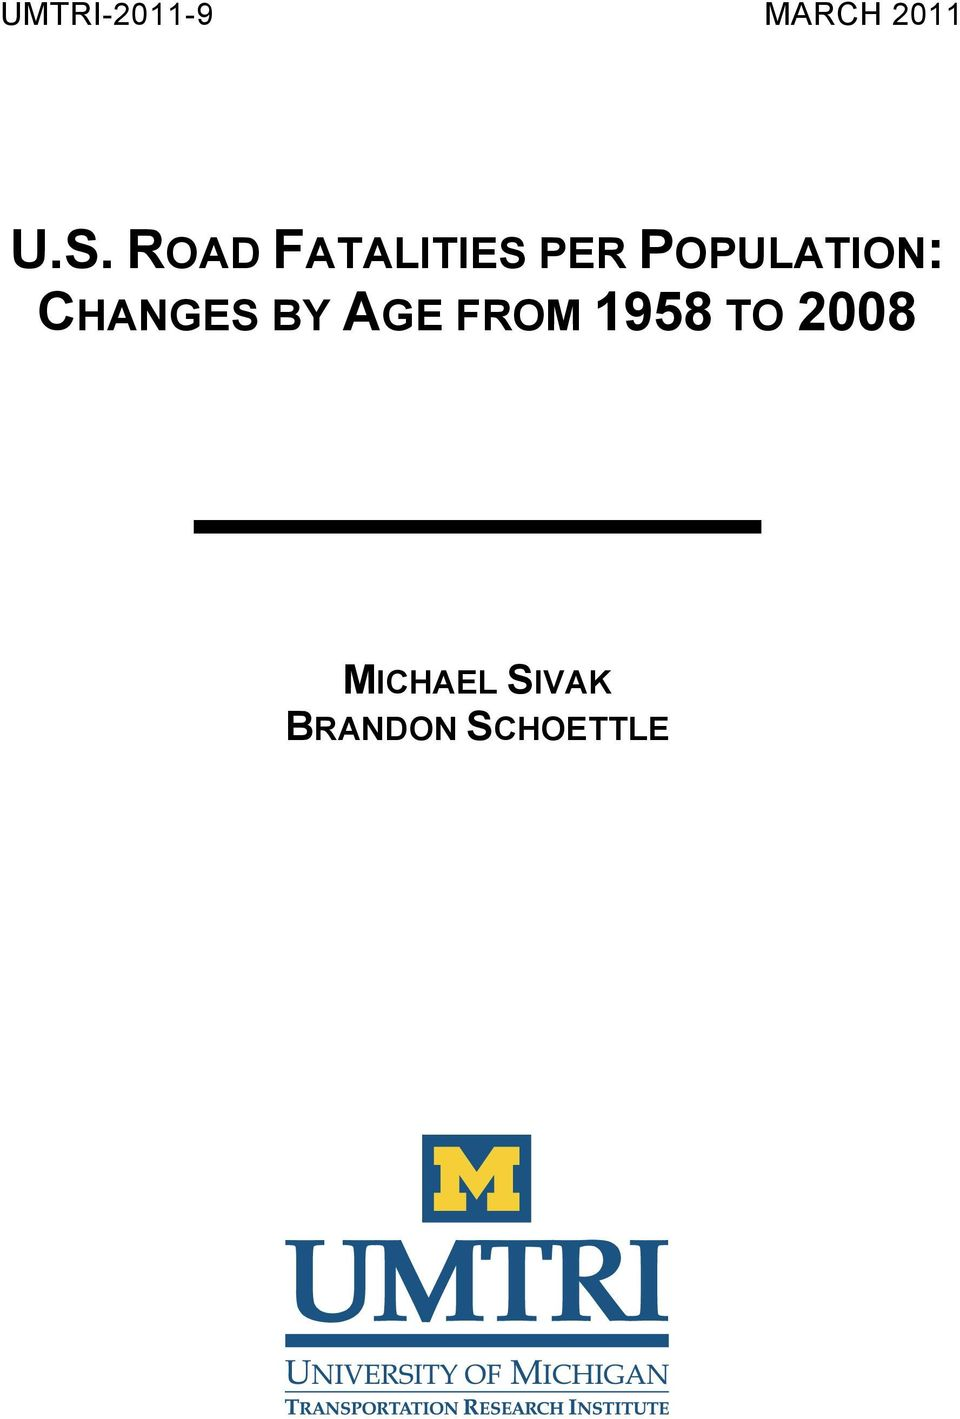 CHANGES BY AGE FROM 1958 TO